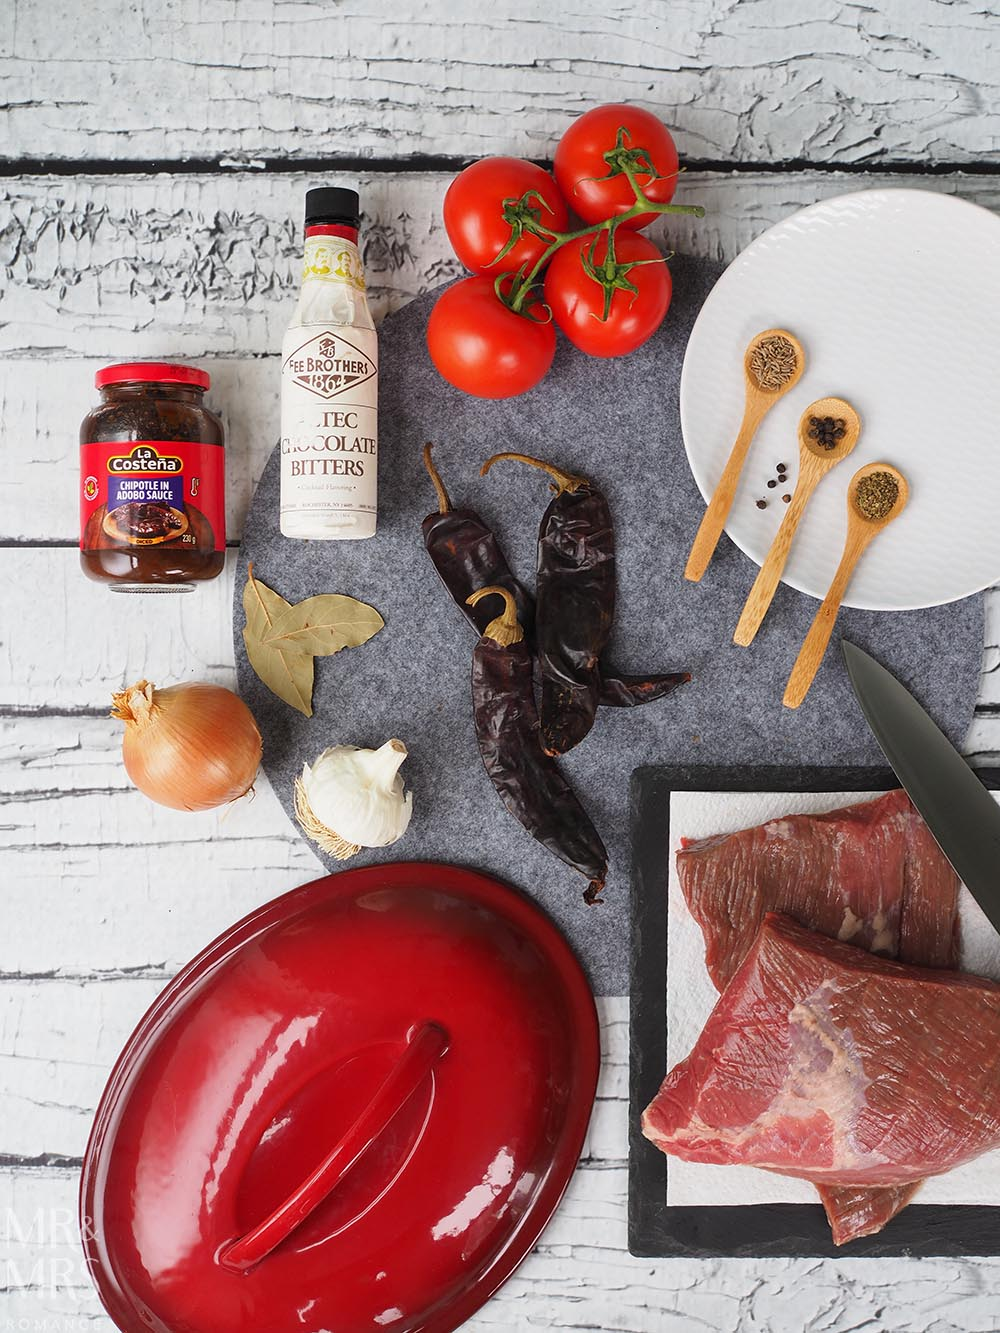 Carne con chilli recipe - ingredients - Rick Stein Mexican food